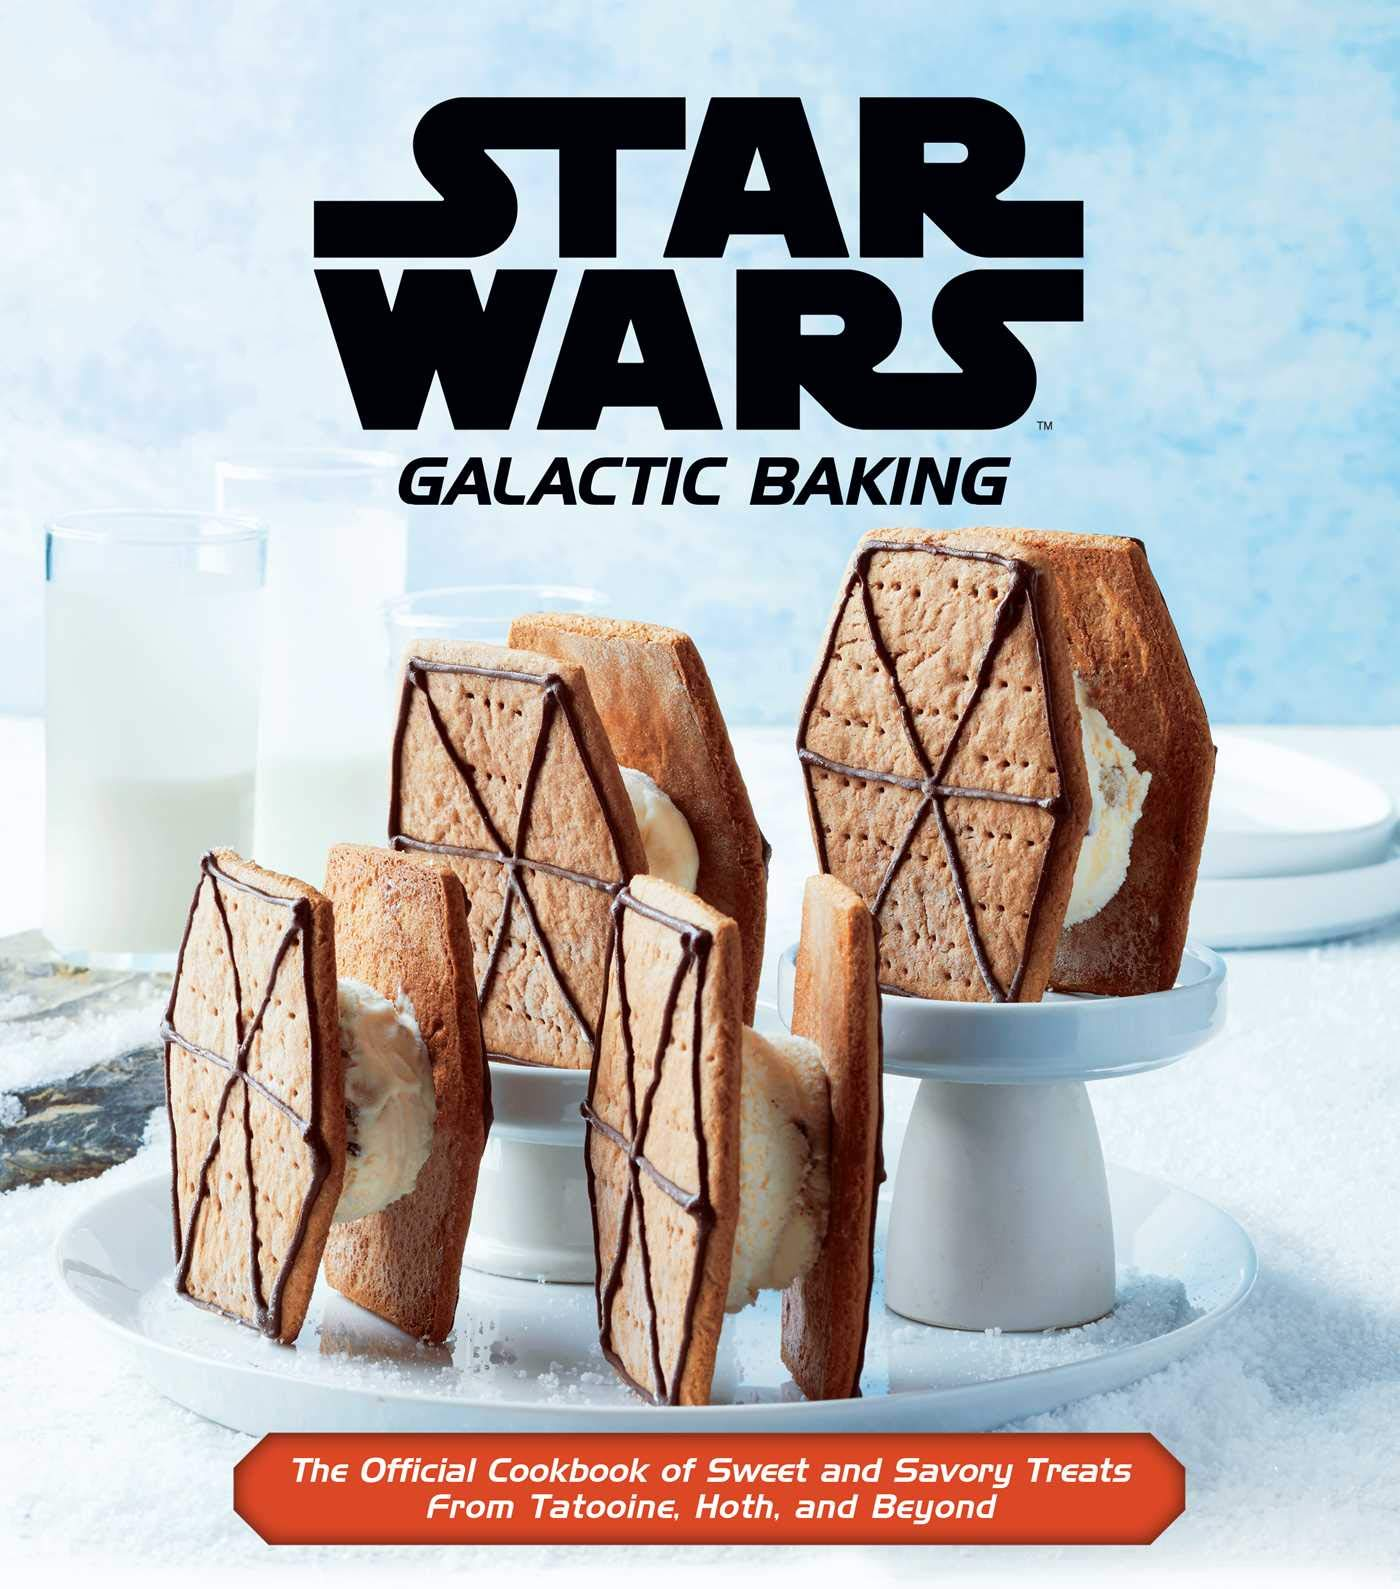 Star Wars: Galactic Baking